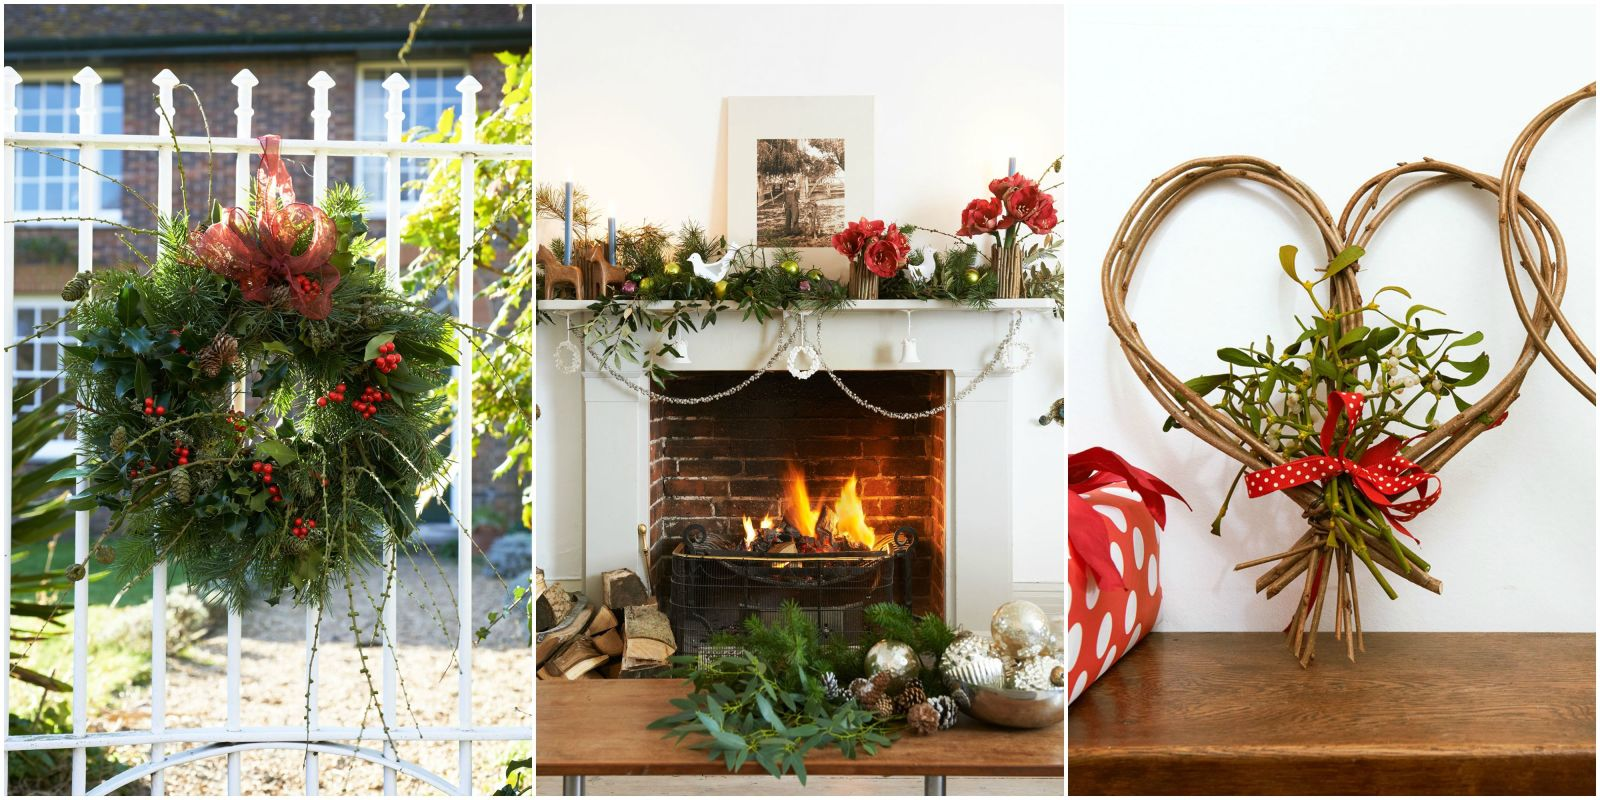 8 ways to decorate your home with greenery this christmas Christmas interior decorating ideas